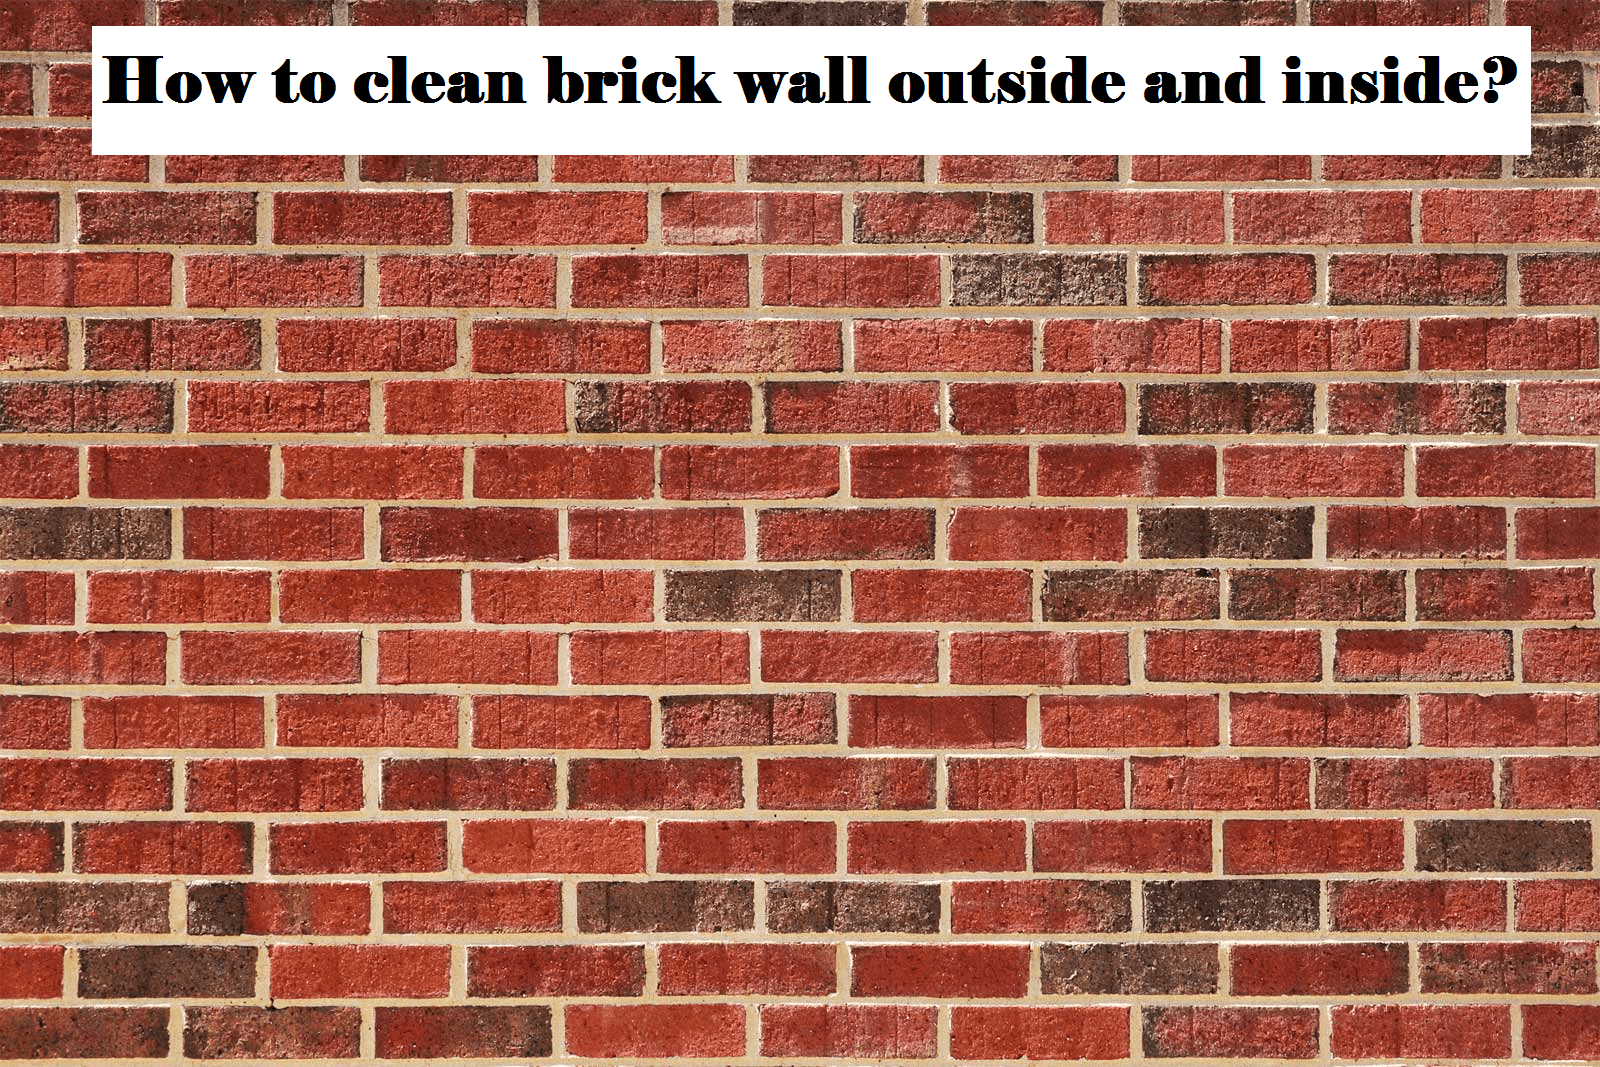 Tips On How To Clean Brick Wall Exterior And Inside